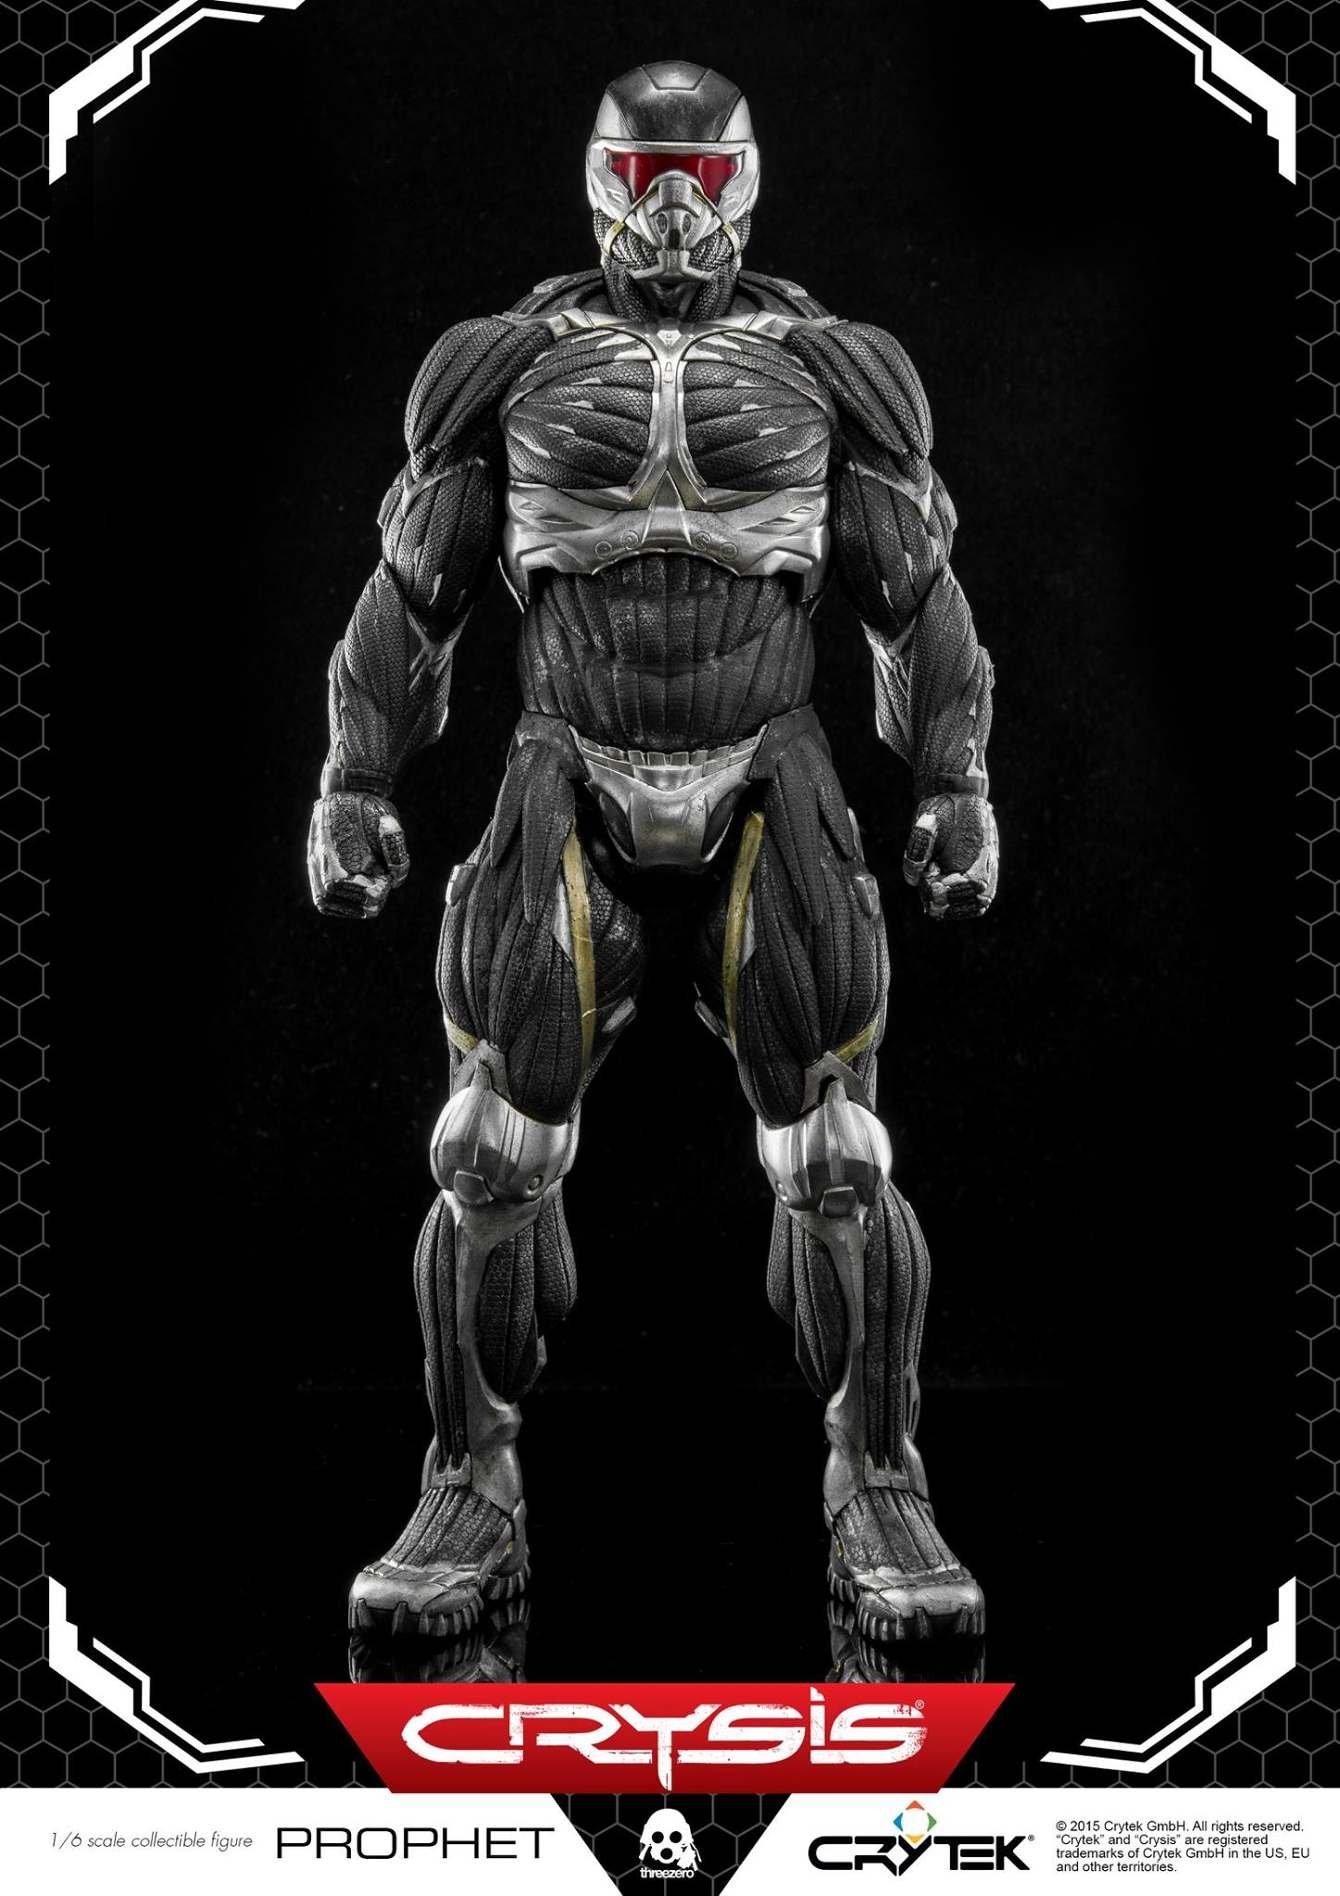 ThreeZero-Crysis-video-game-Prophet-CRY6_1340_c.jpg